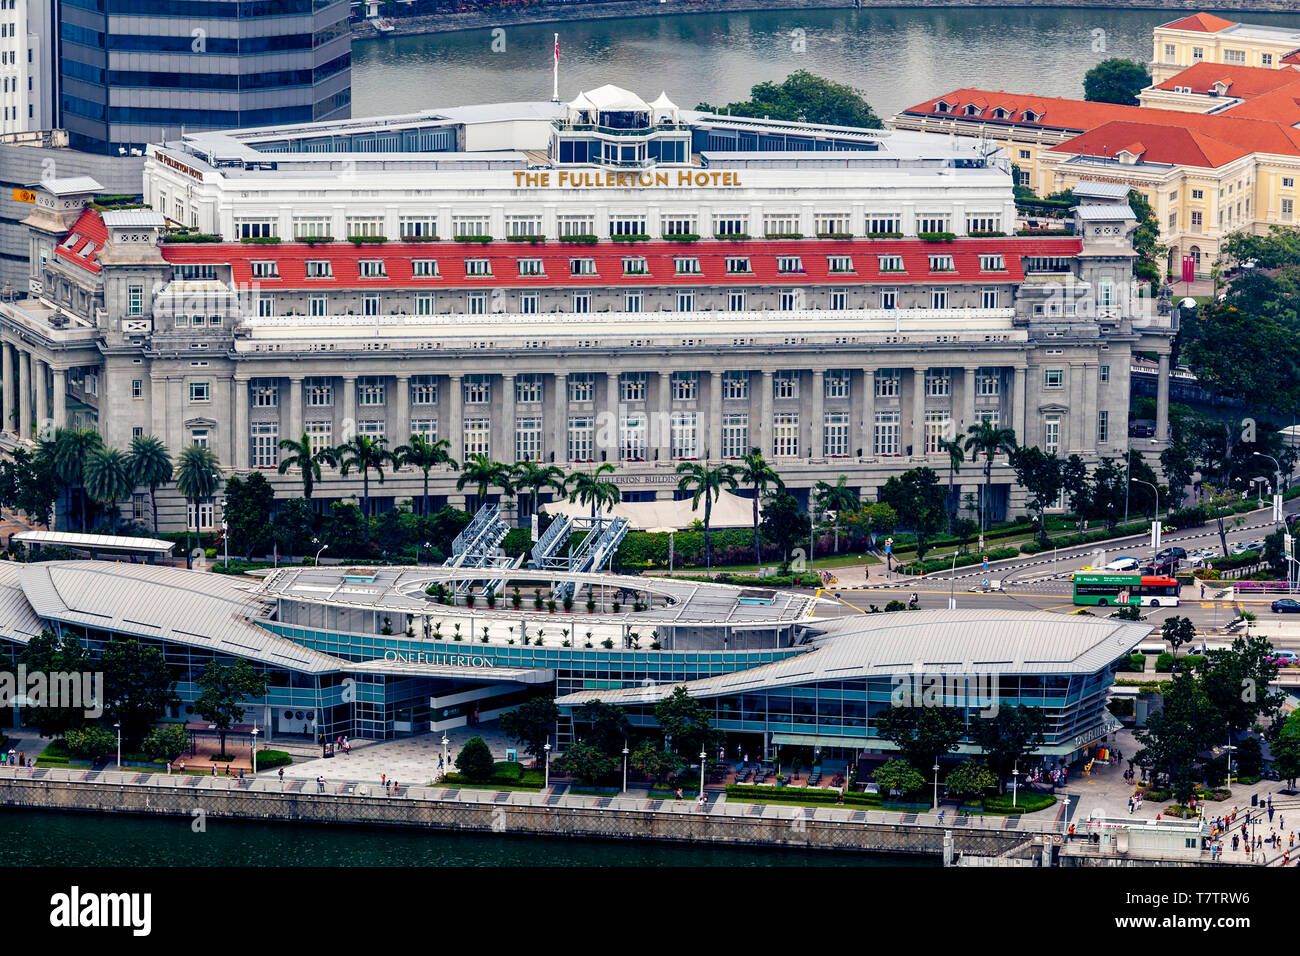 An Aerial View Of The Fullerton Hotel & One Fullerton, Singapore, South East Asia - Stock Image